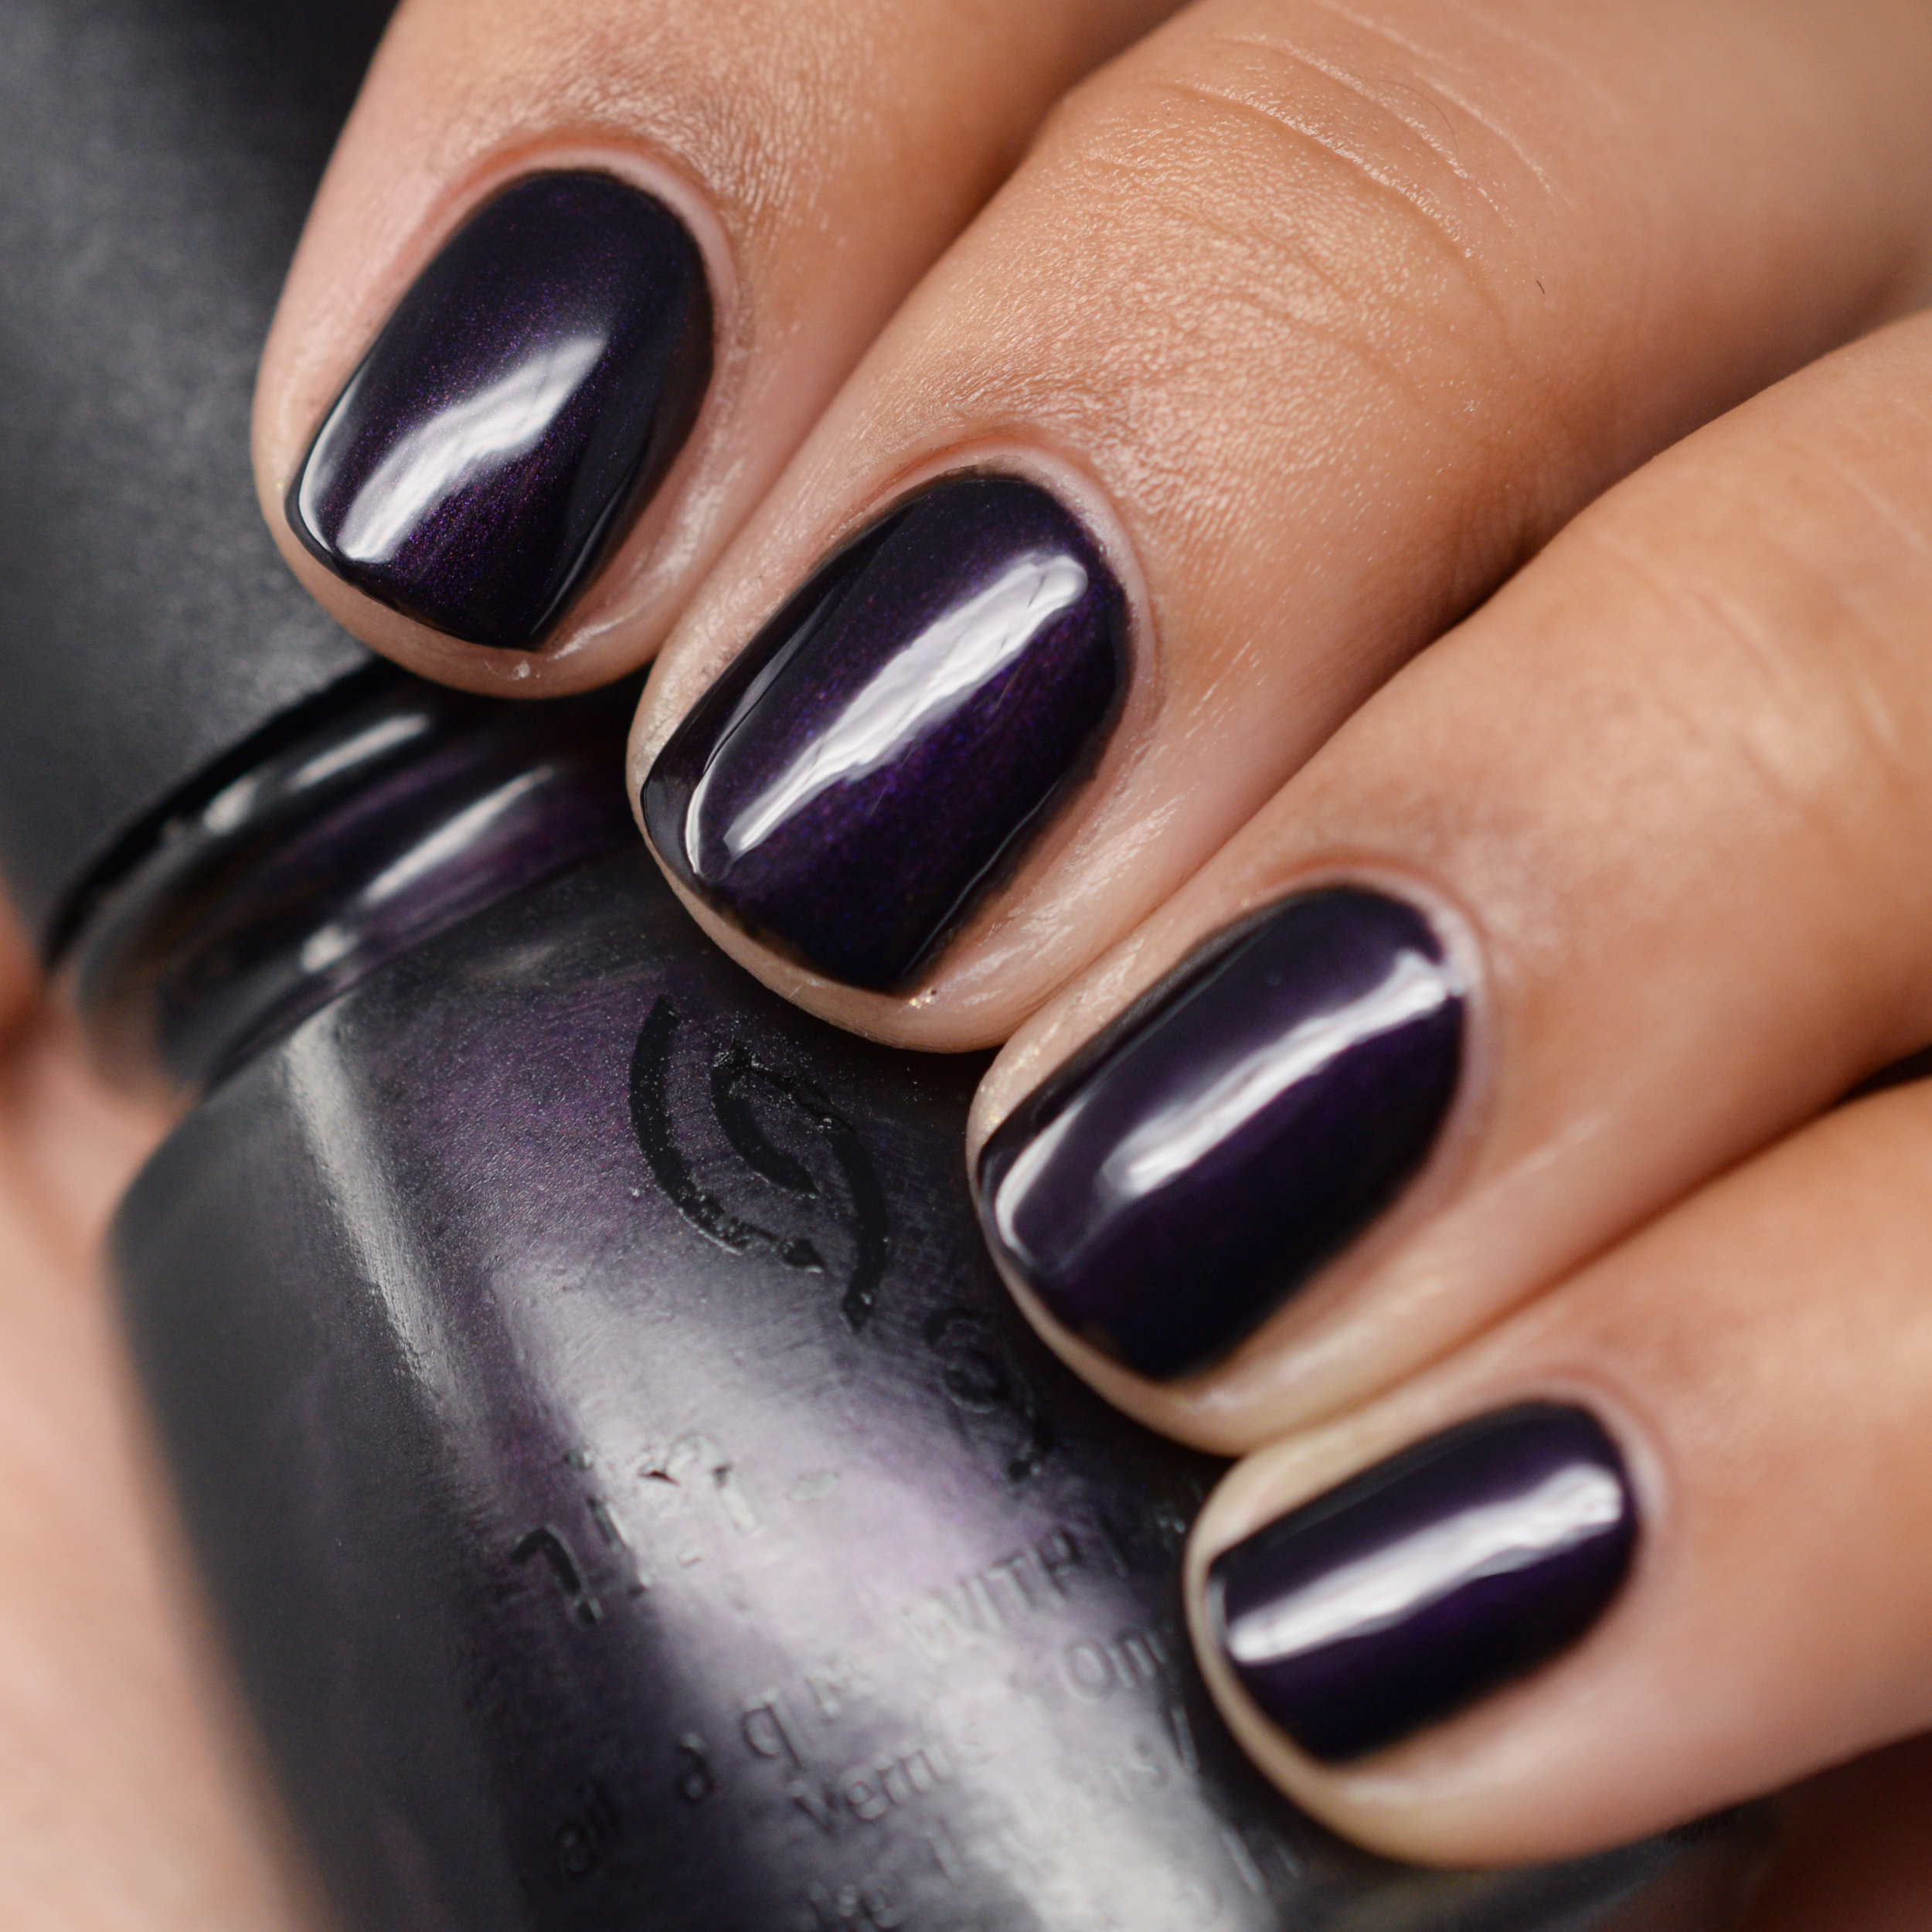 China Glaze Rodeo Diva Fall 2008 - Midnight Ride.jpg